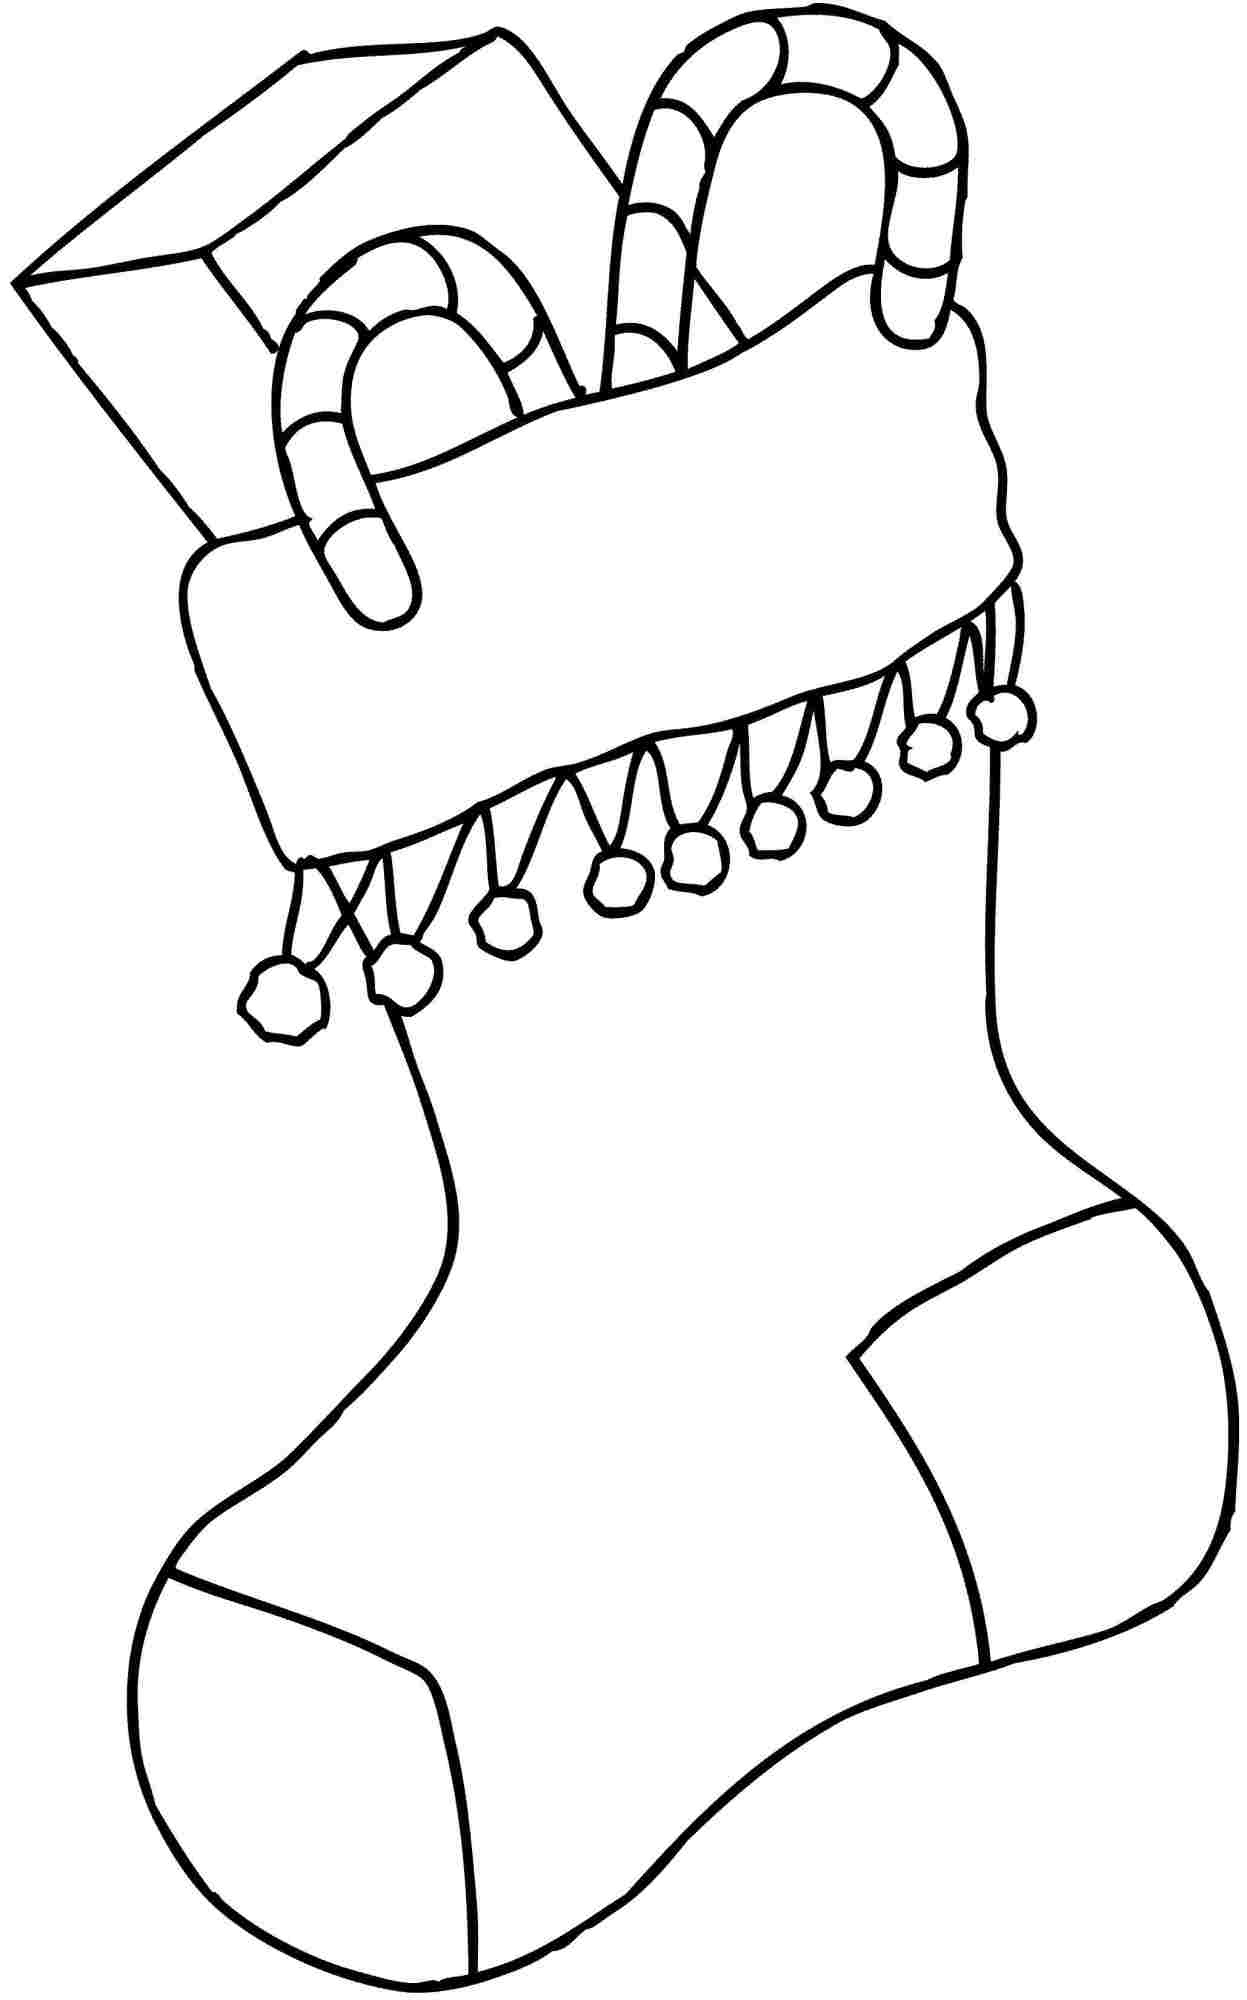 Coloring Pages: Christmas Stocking Pictures To Print Printable - Christmas Stocking Template Printable Free